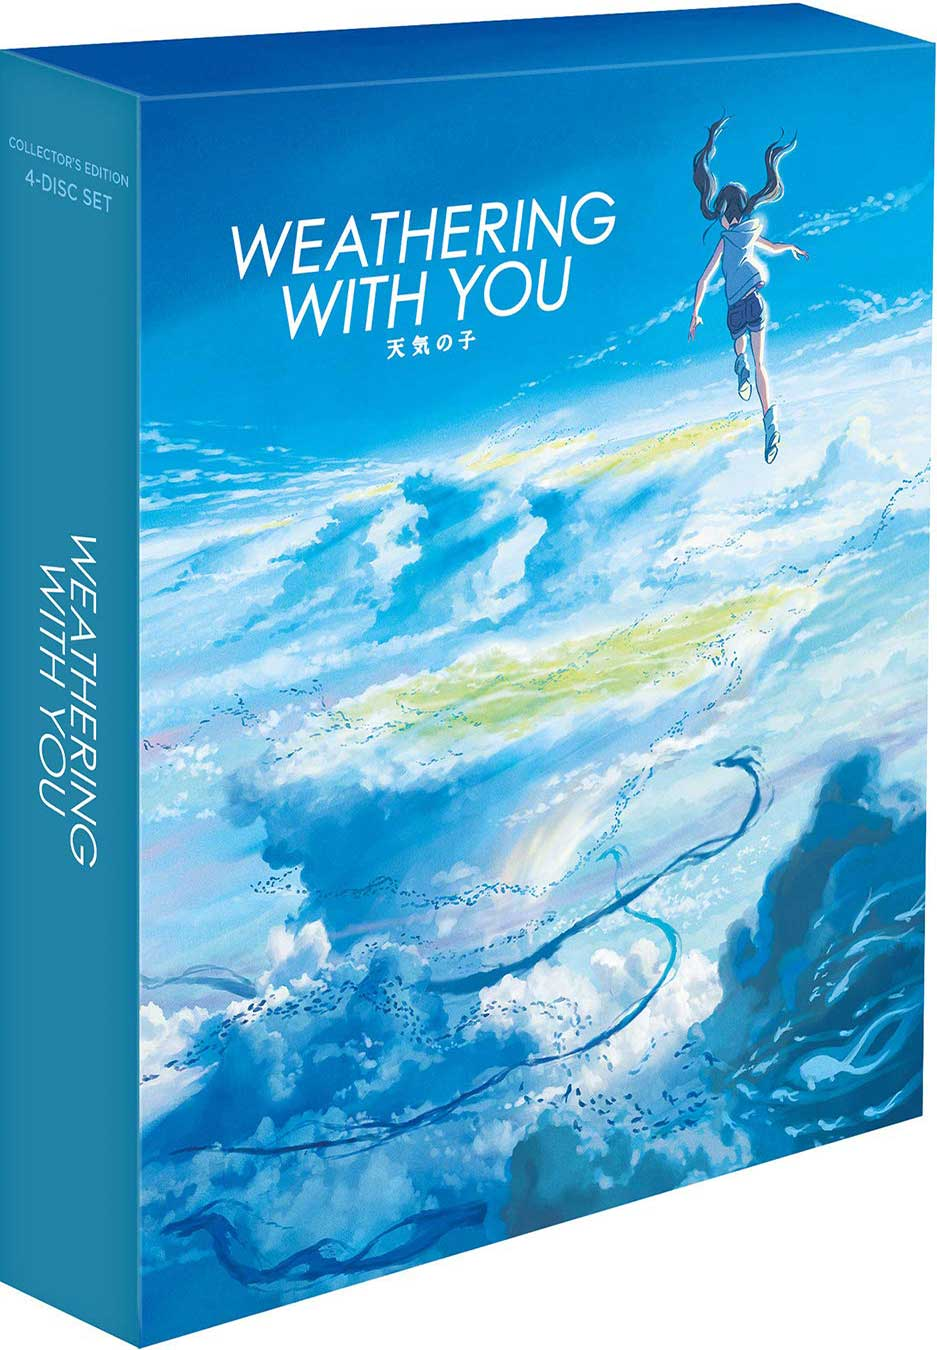 Weathering-With-You-4k-Blu-ray